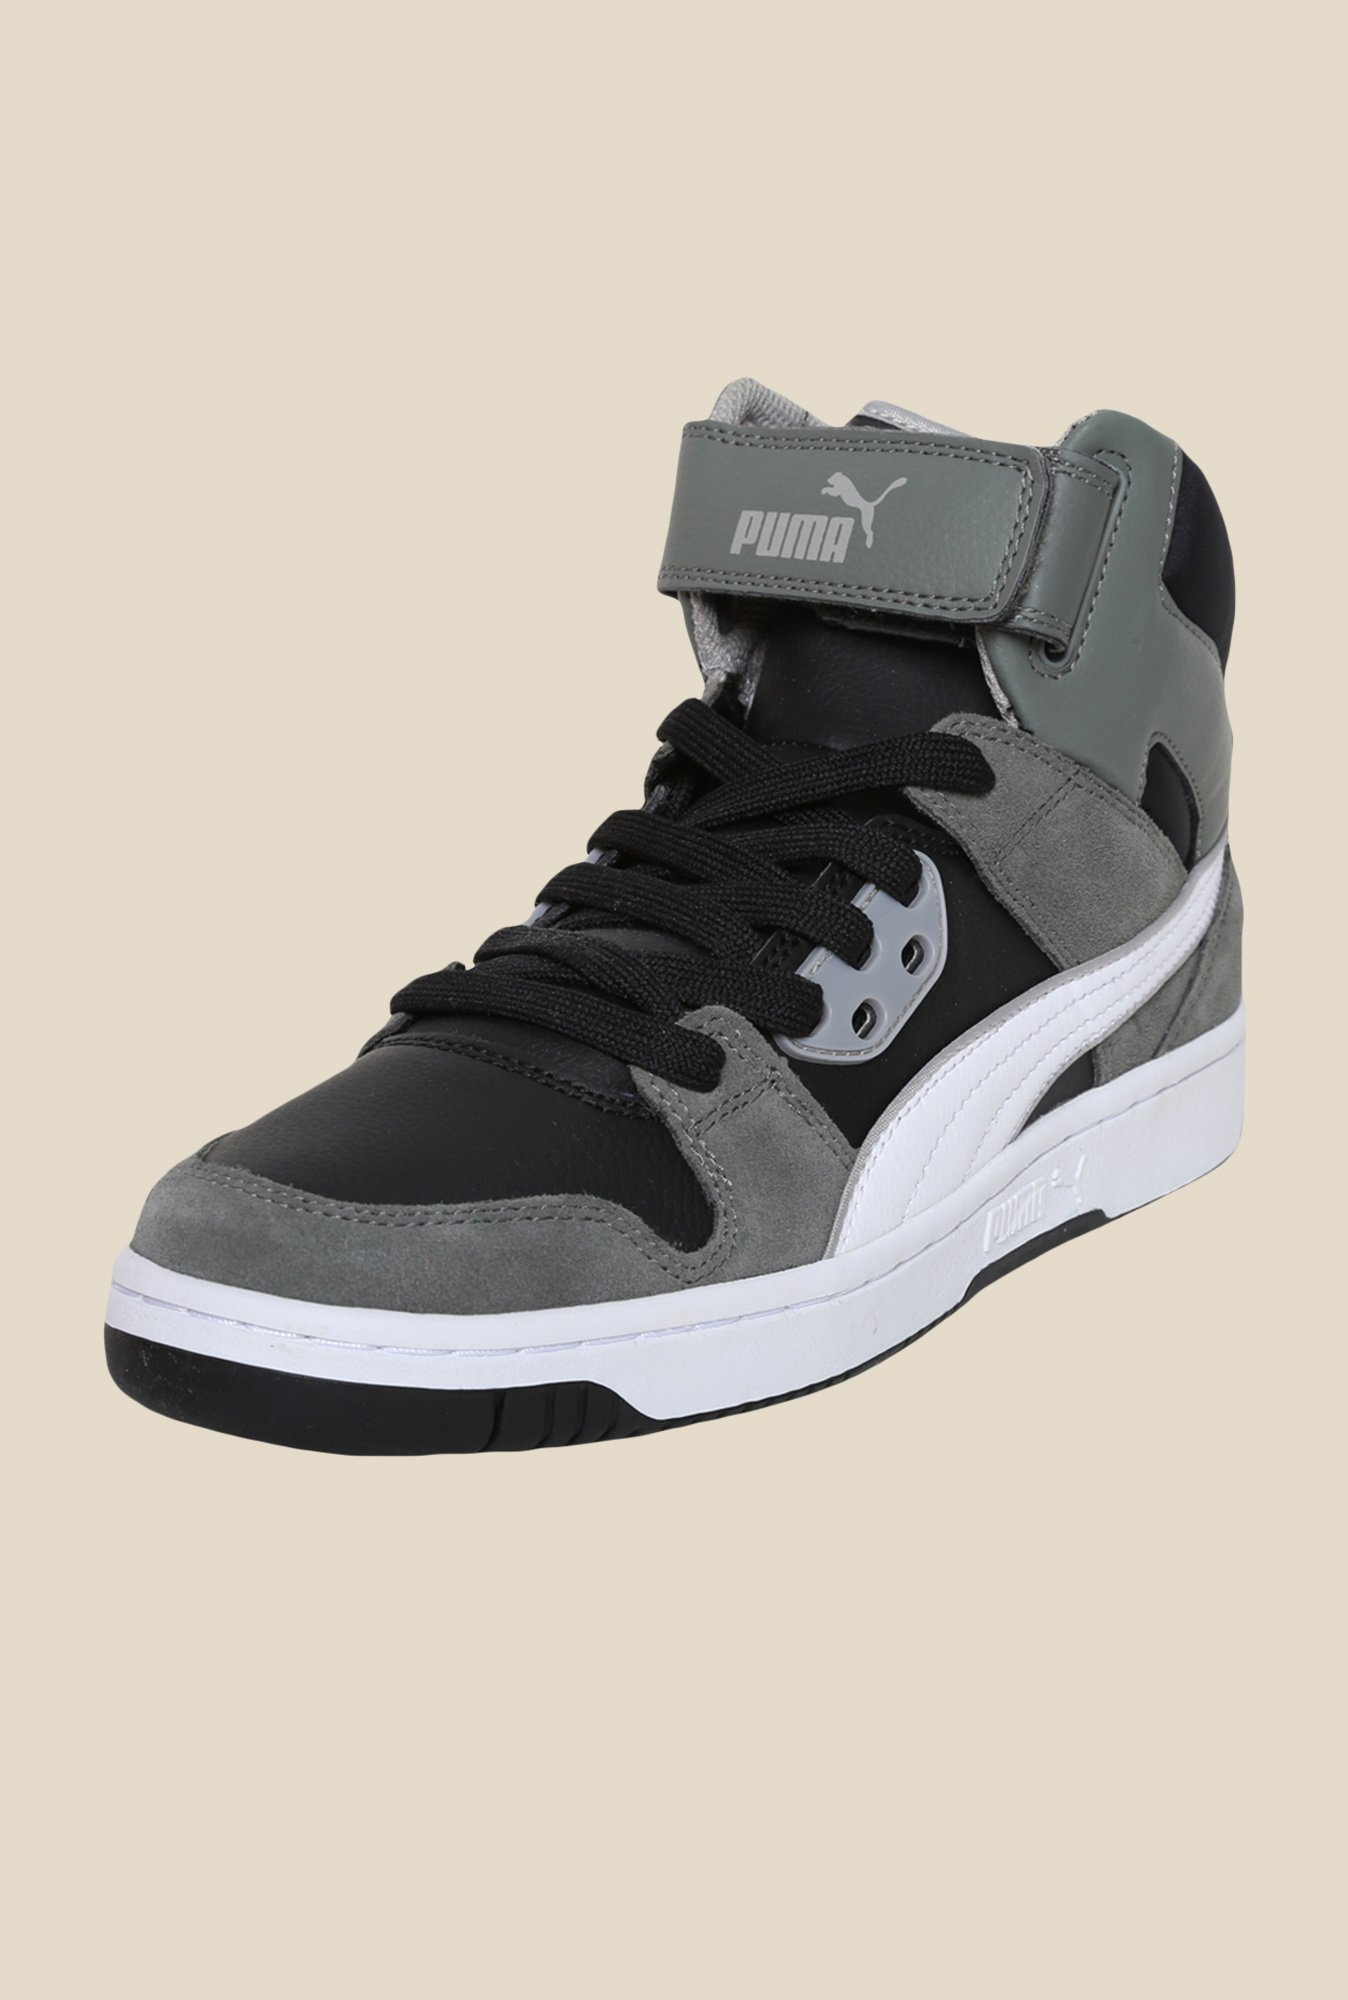 Puma Rebound Street SD Black & White Sneakers